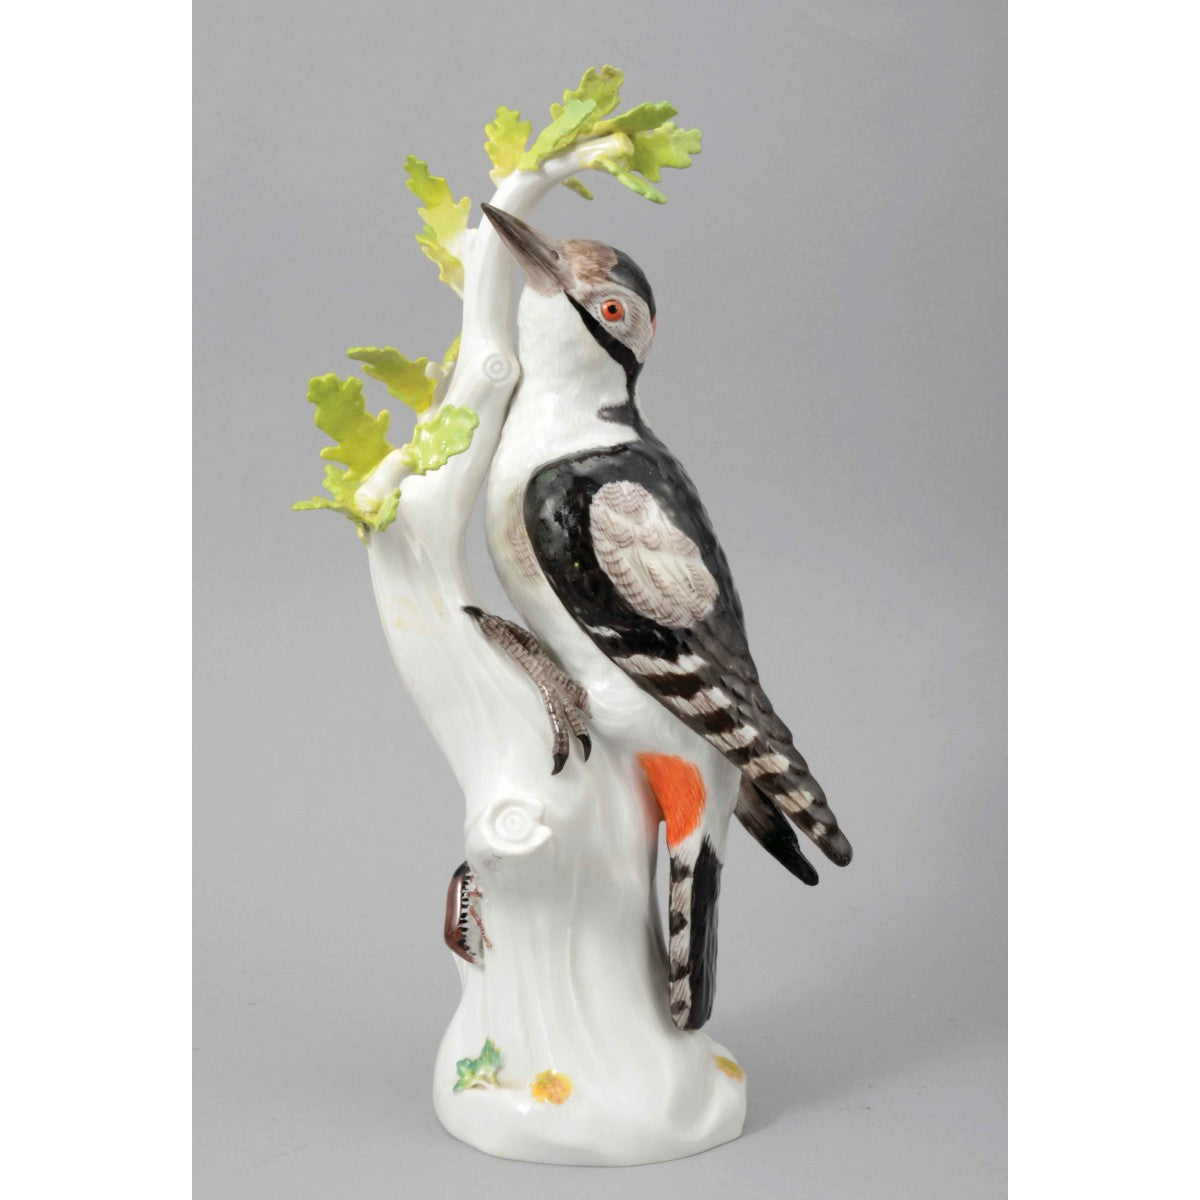 A Meissen Porcelain Great Spotted Woodpecker